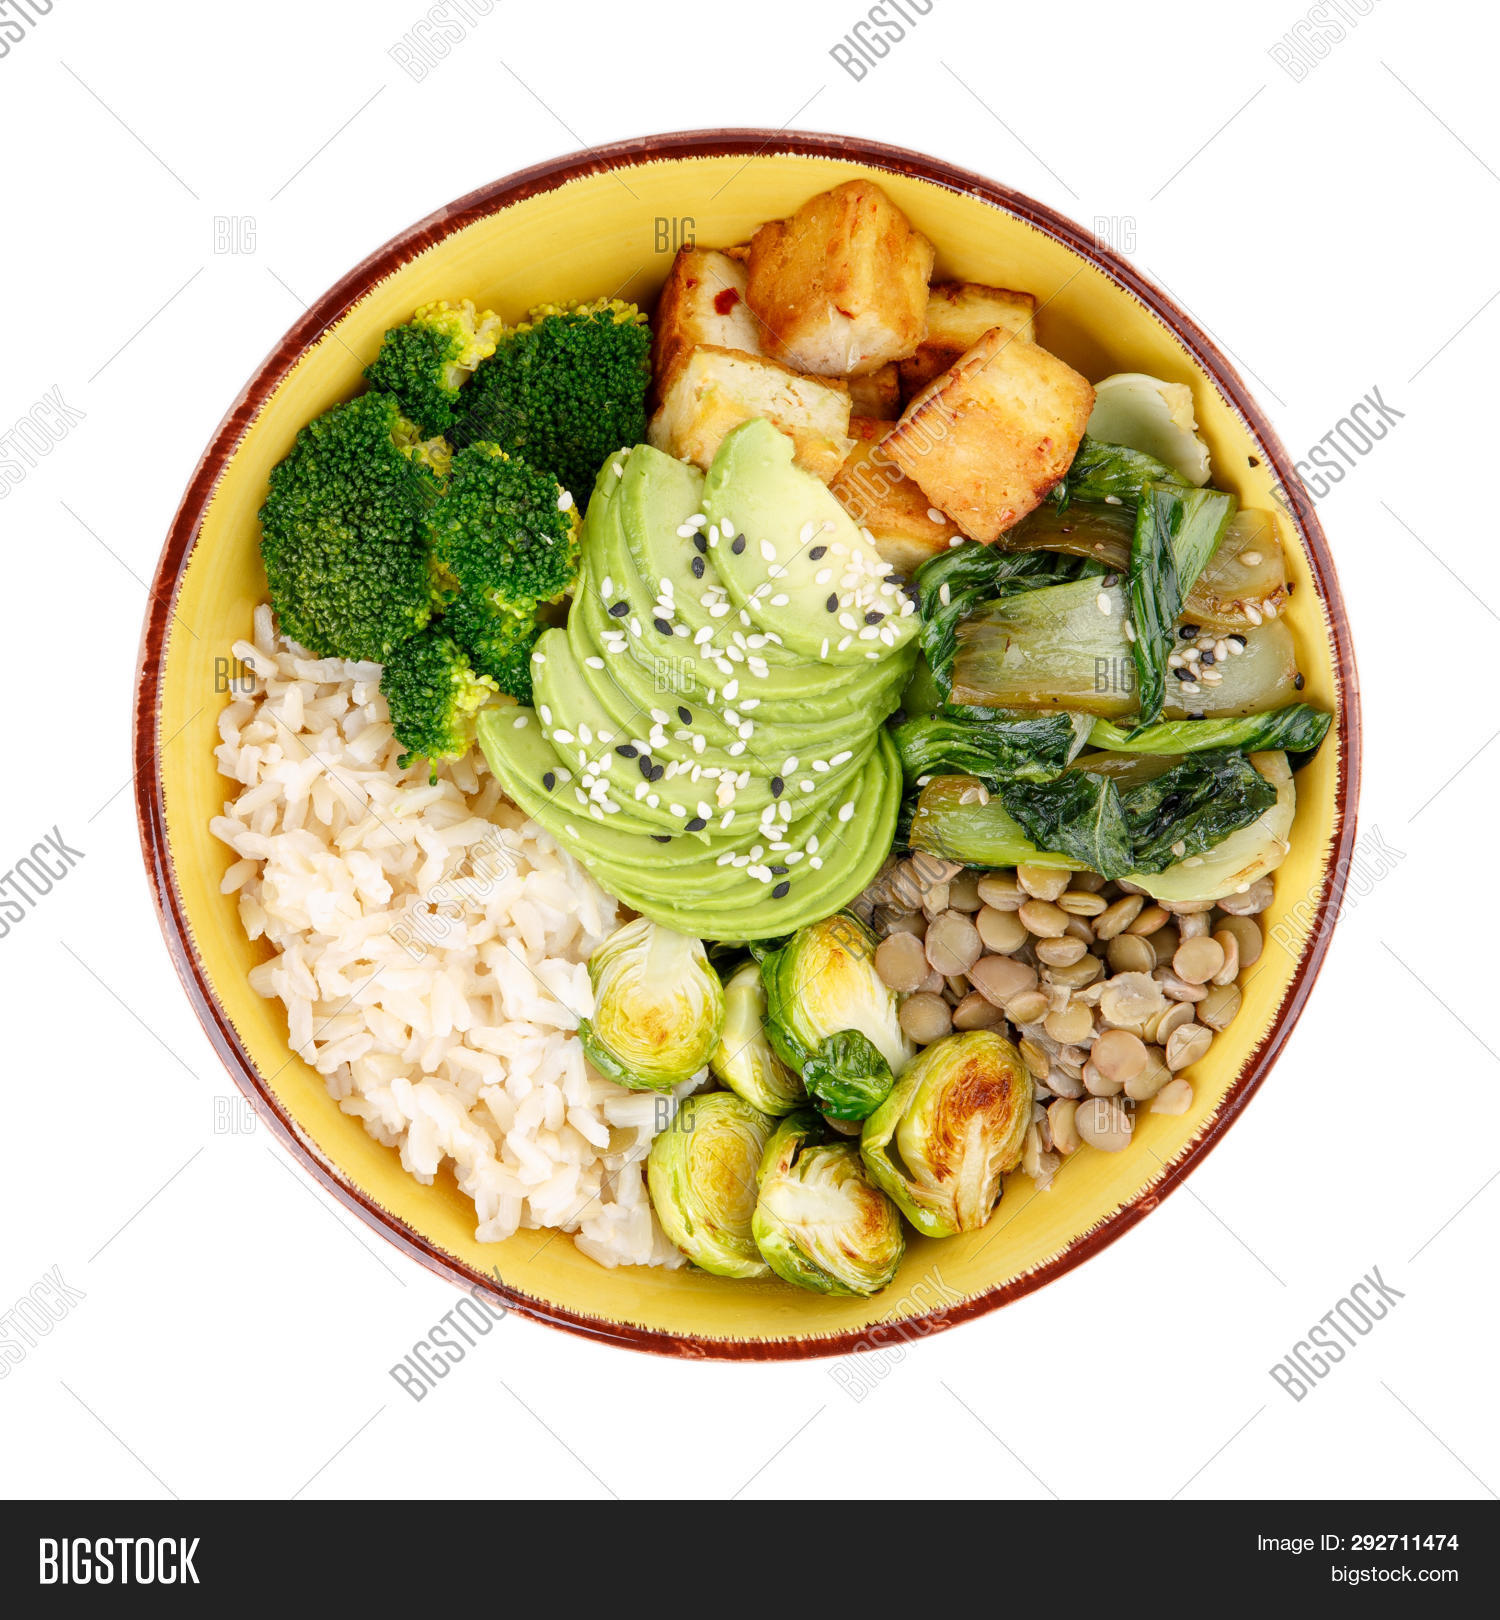 above,asian,avocado,background,balanced,bok,bowl,broccoli,brussels,buddha,cabbage,choy,colorful,concept,detox,diet,dinner,food,fresh,grain,green,health,healthy,isolated,lentils,lunch,meal,mix,nutrition,organic,plate,protein,rainbow,raw,rice,salad,seed,sesame,snack,sprouts,superfood,tofu,top,trend,vegan,vegetable,vegetarian,veggie,view,white